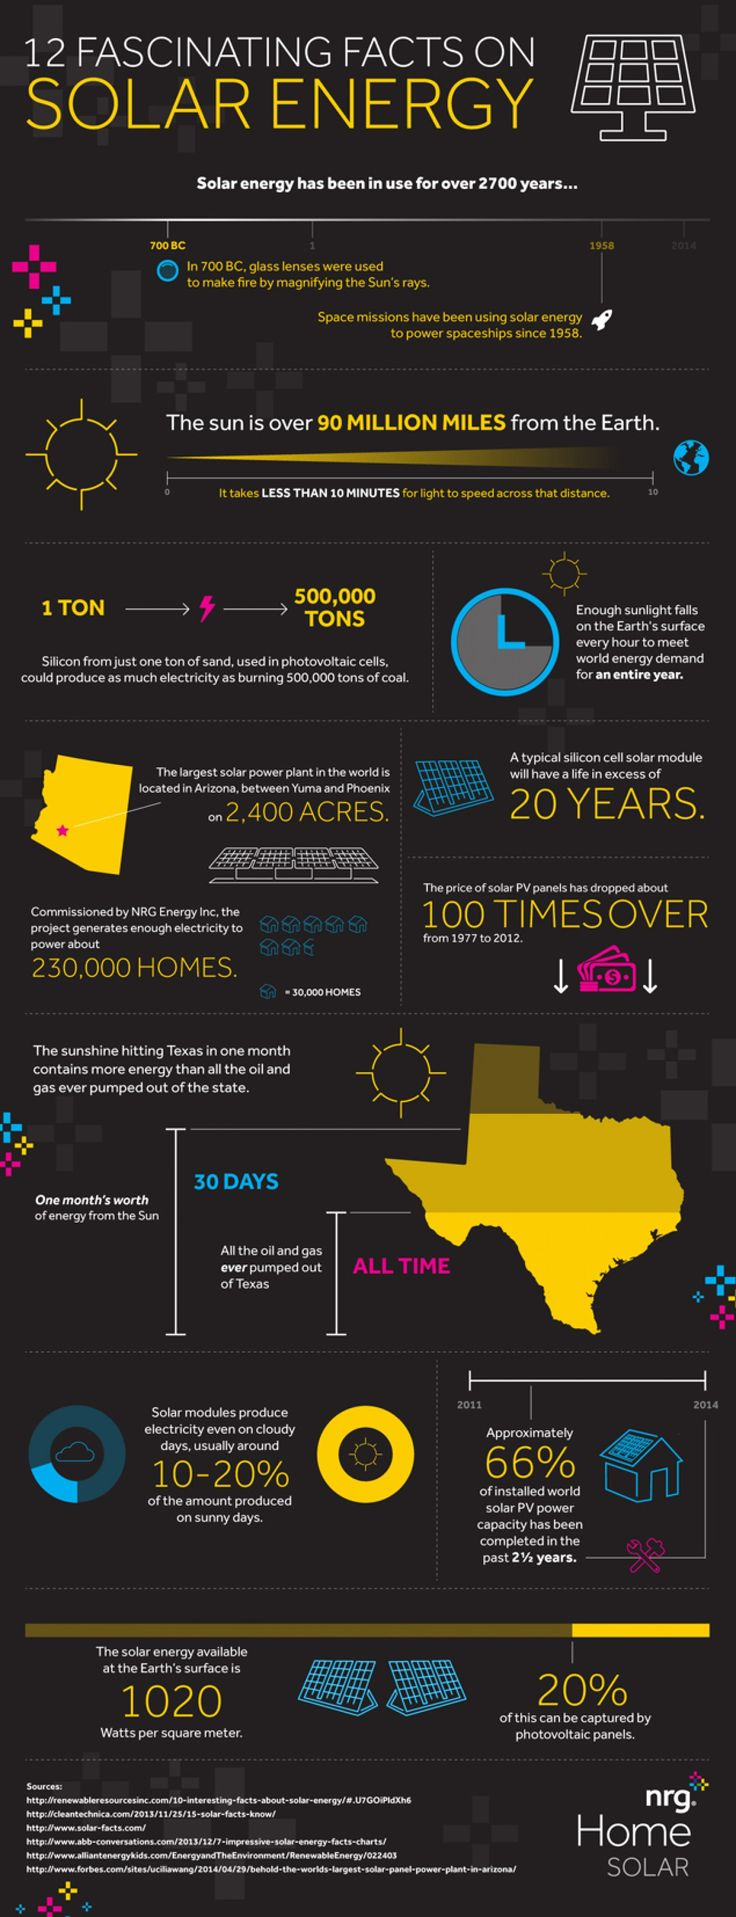 12 Fascinating Facts On Solar Energy Infographic